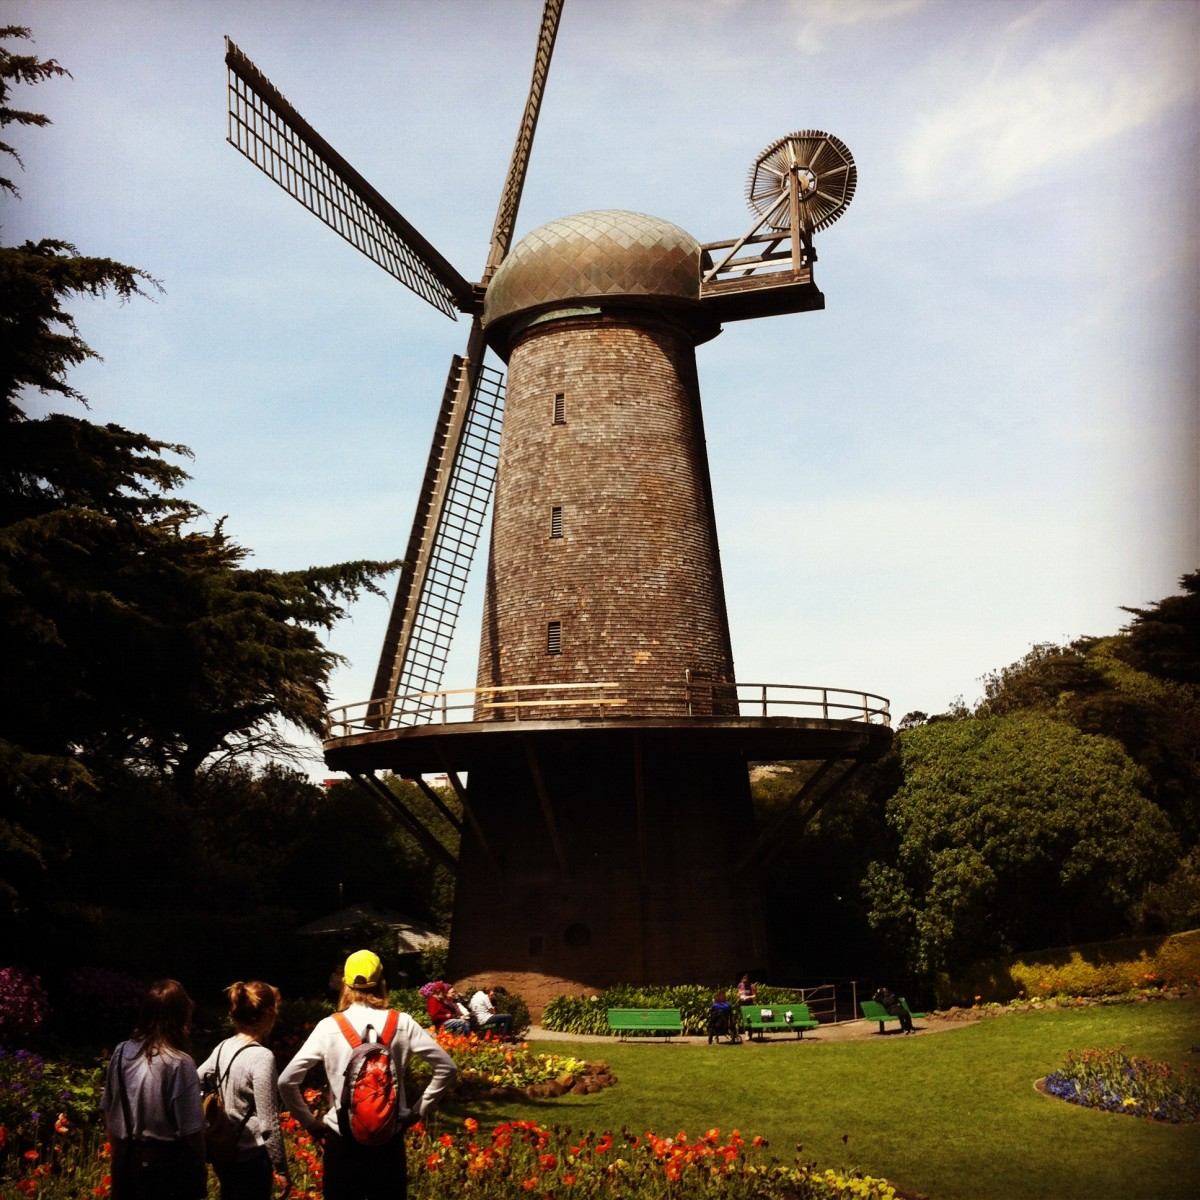 The Queen Wilhelmina Windmill, one of two Dutch-style windmills built in 1903 to pump water through the park. The north windmill is named after Queen Wilhelmina of The Netherlands who made a gift of the adjacent flower garden.